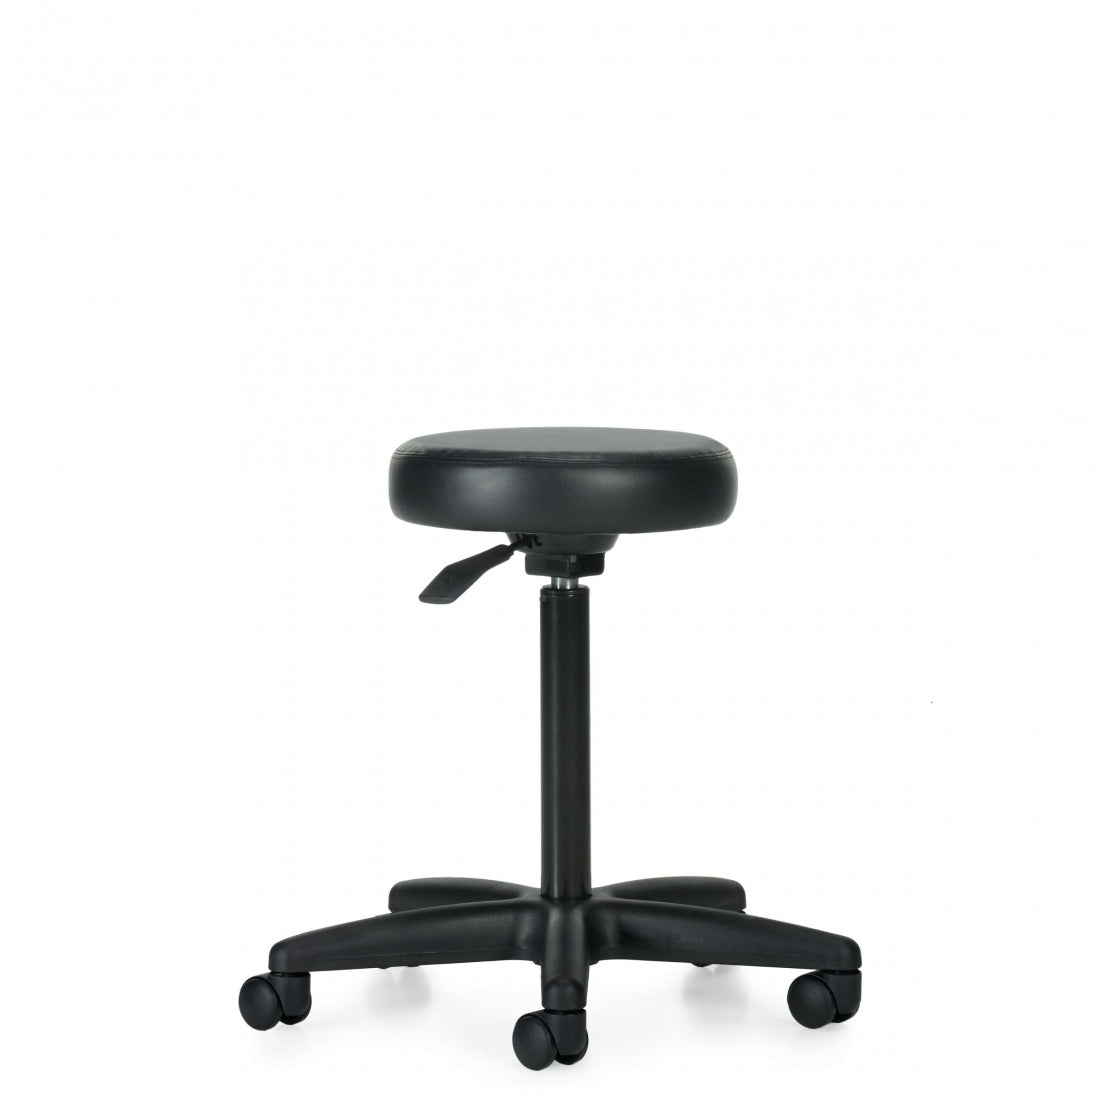 Buy Office Conference Room Chairs | 24/7 Workspace in Grapevine, TX | DFW Conference Chairs